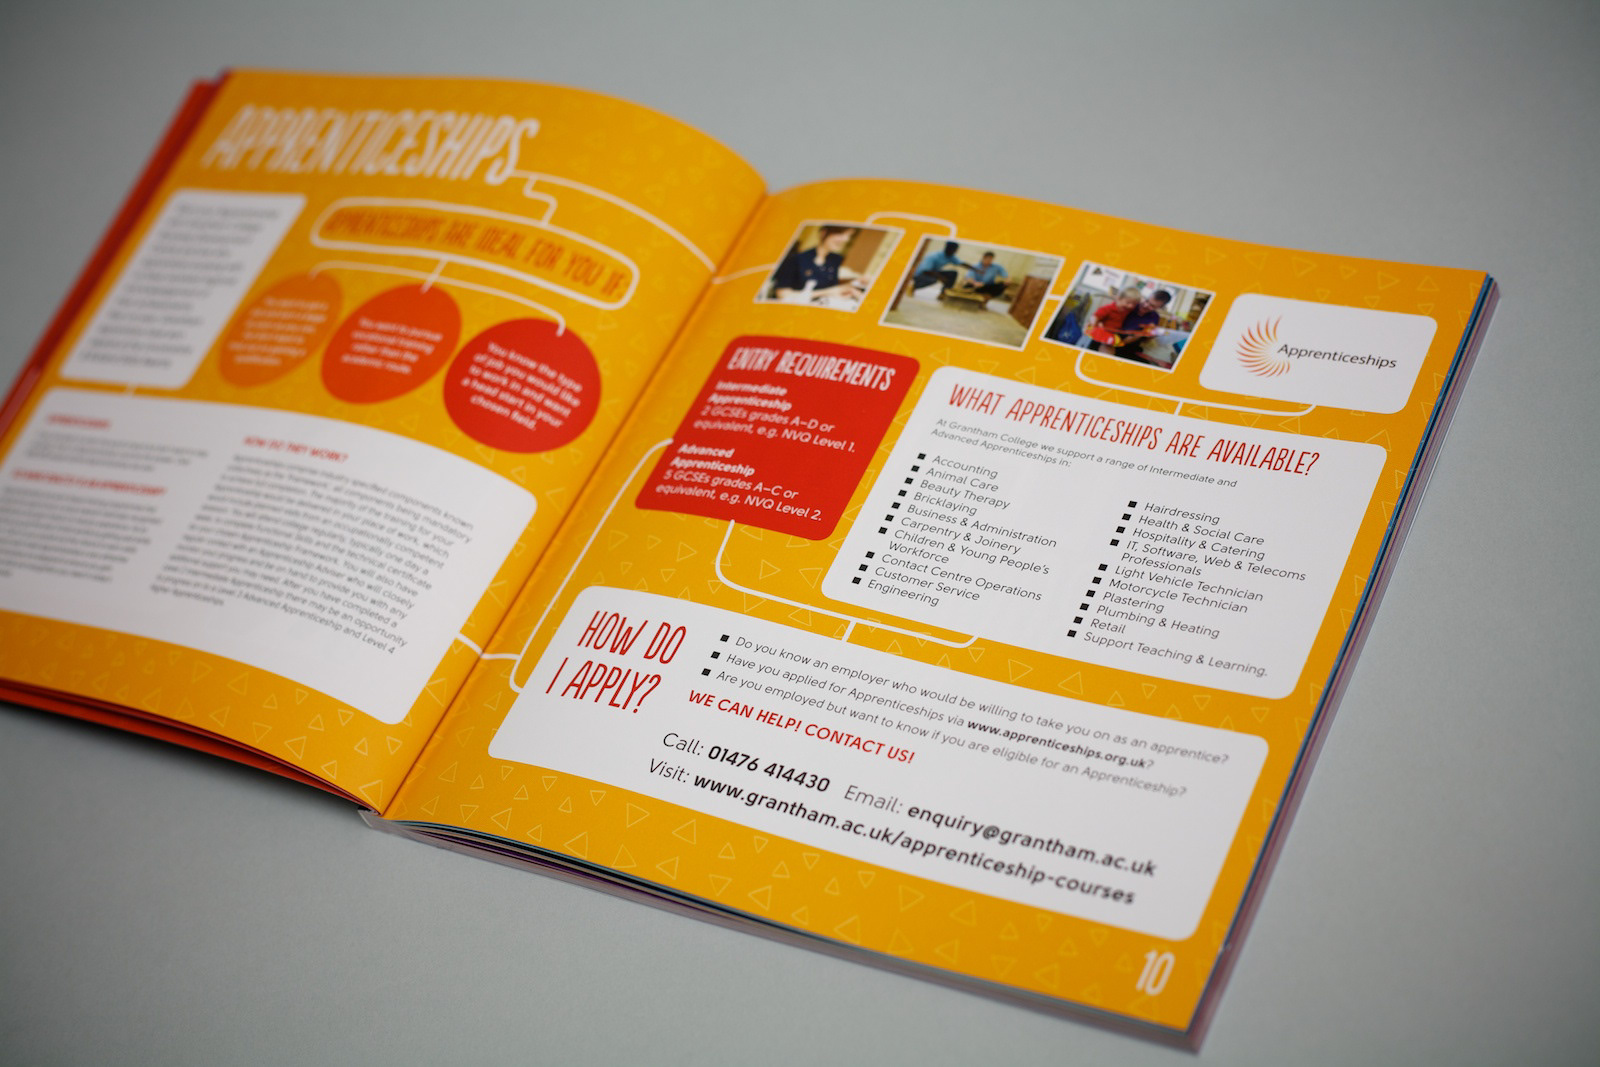 Joseph Arch - College is the Choice 14-15 Full-Time Courses Brochure